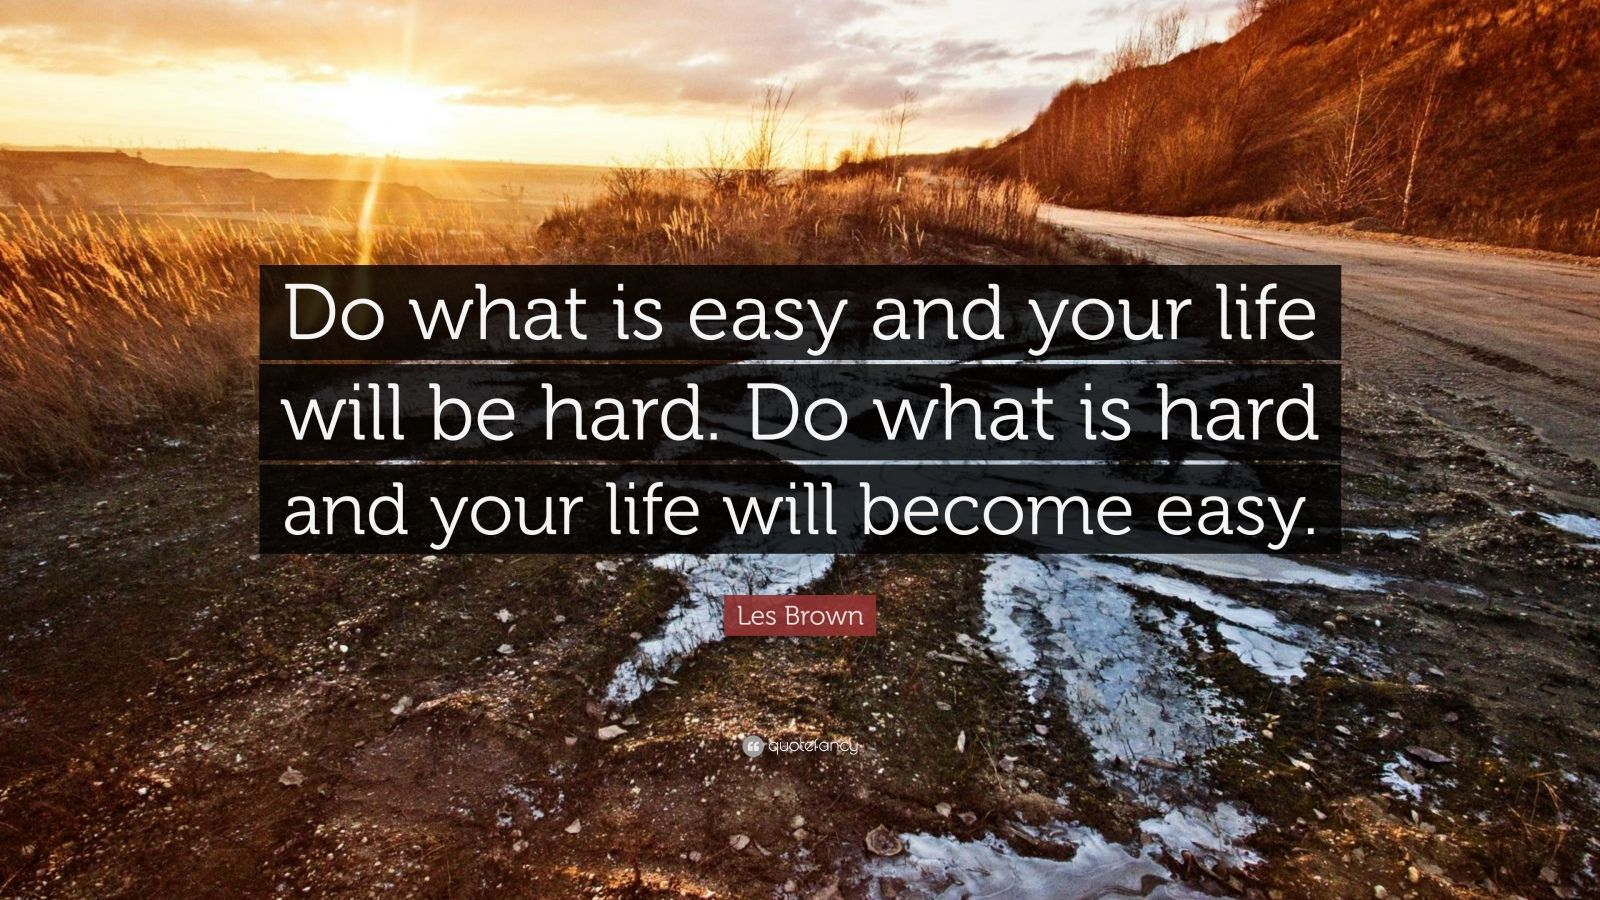 Startup Quotes Wallpaper Les Brown Quote Do What Is Easy And Your Life Will Be